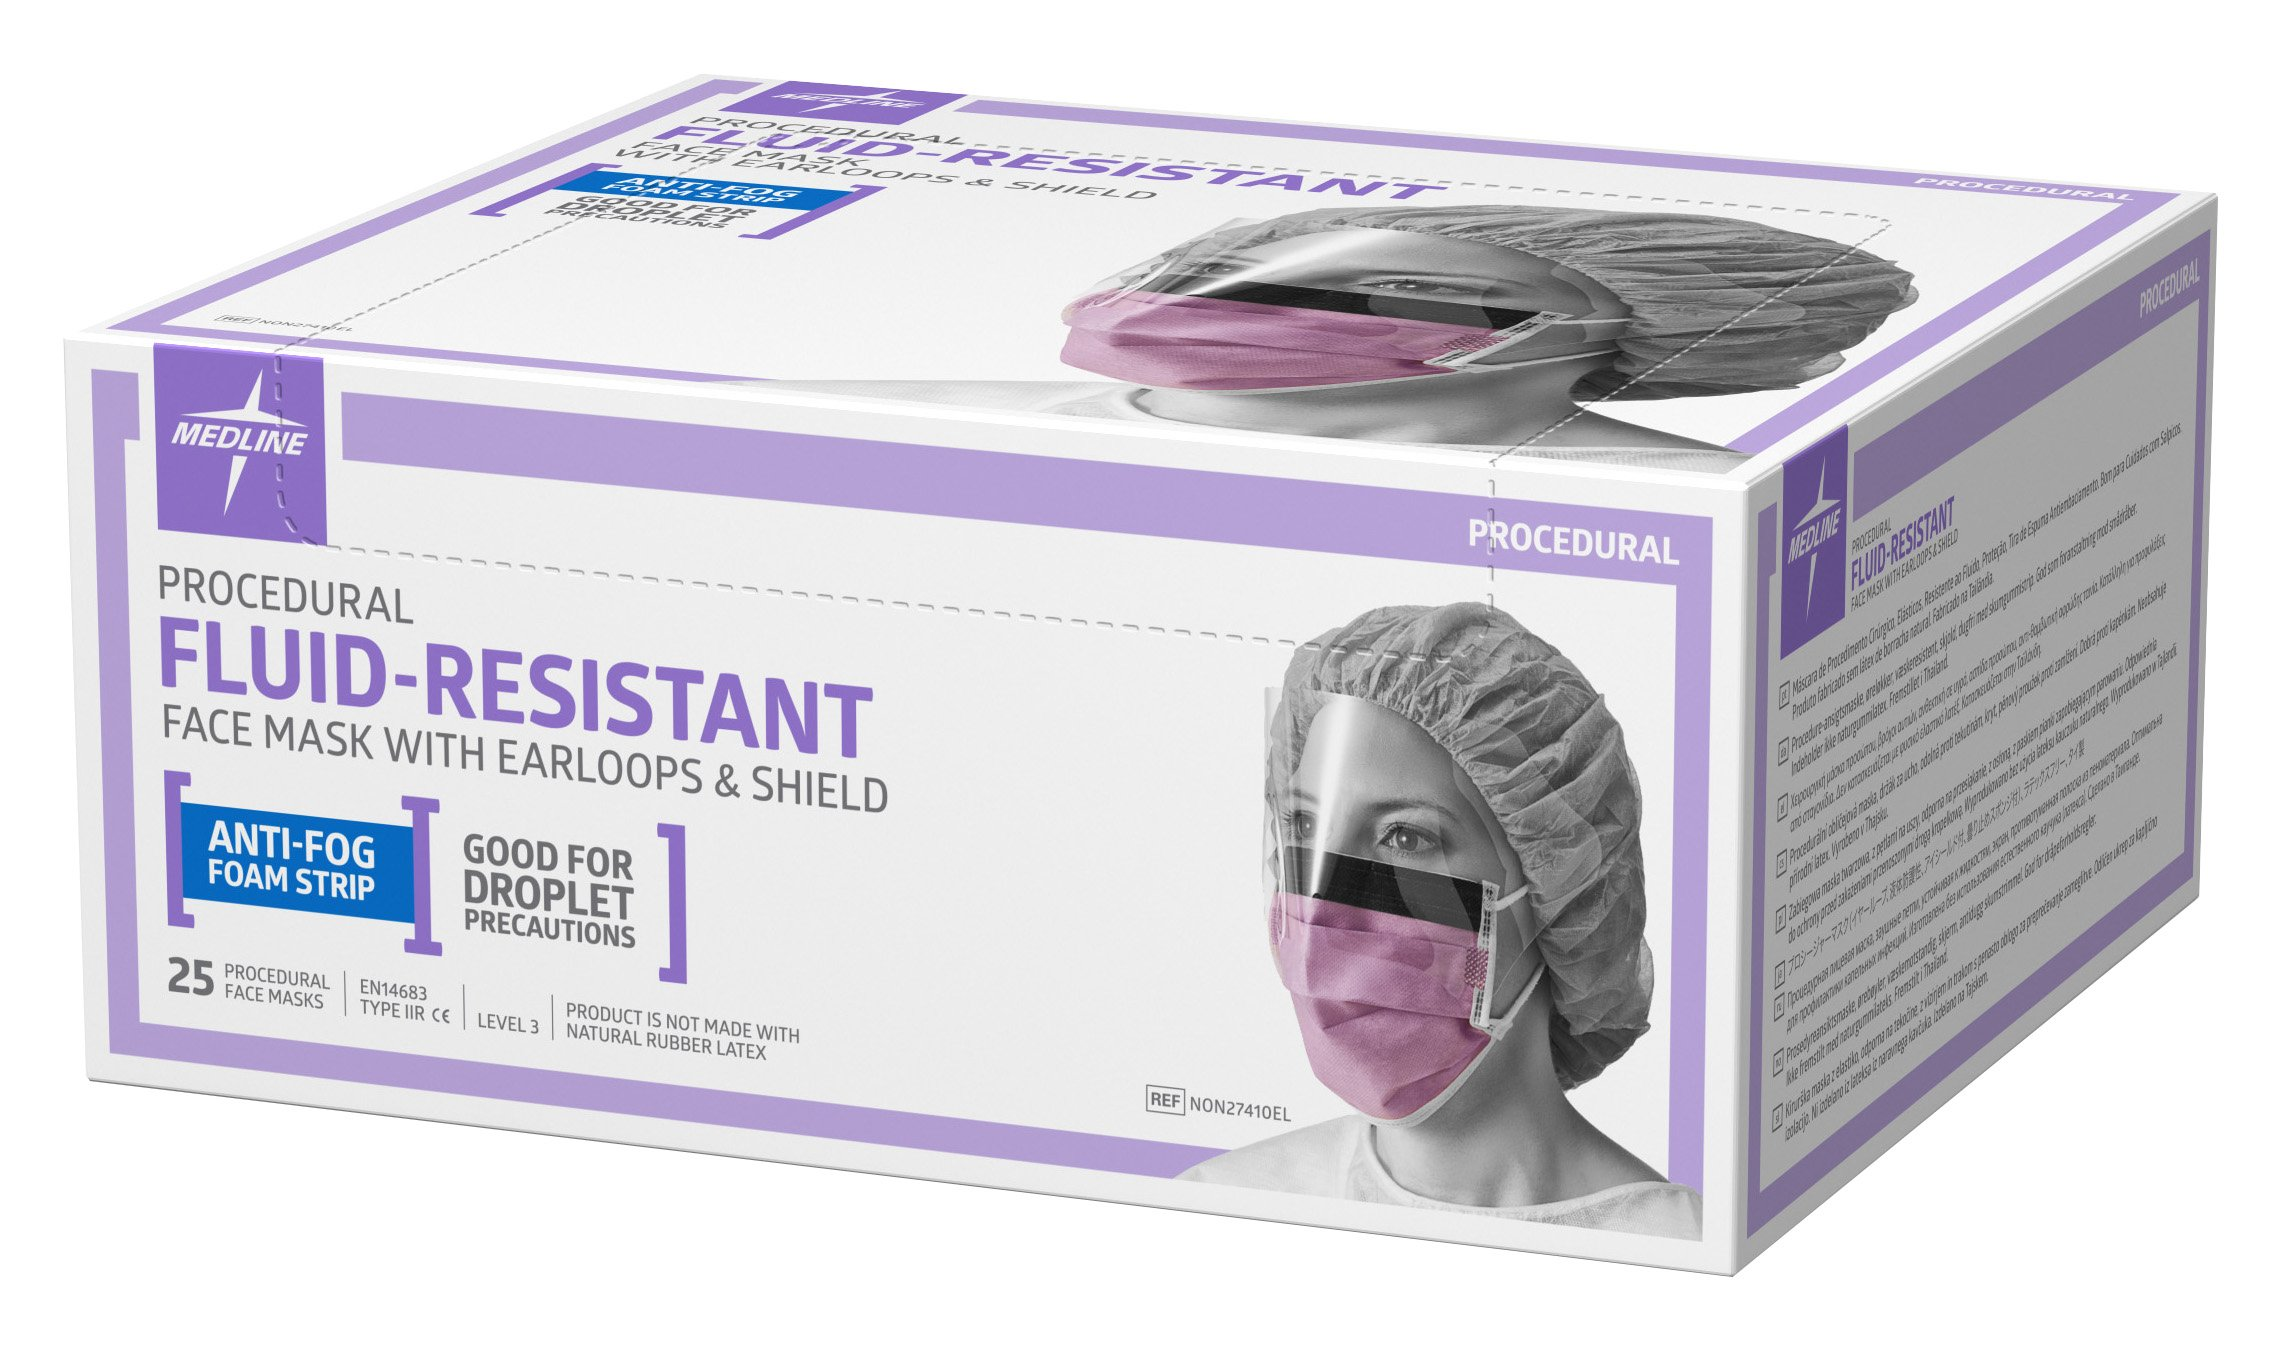 Medline NON27410EL Surgical Face Masks with Eyeshield and Earloop, Anit Fog, Fluid-Resistant, Latex Free, Purple (Pack of 100)